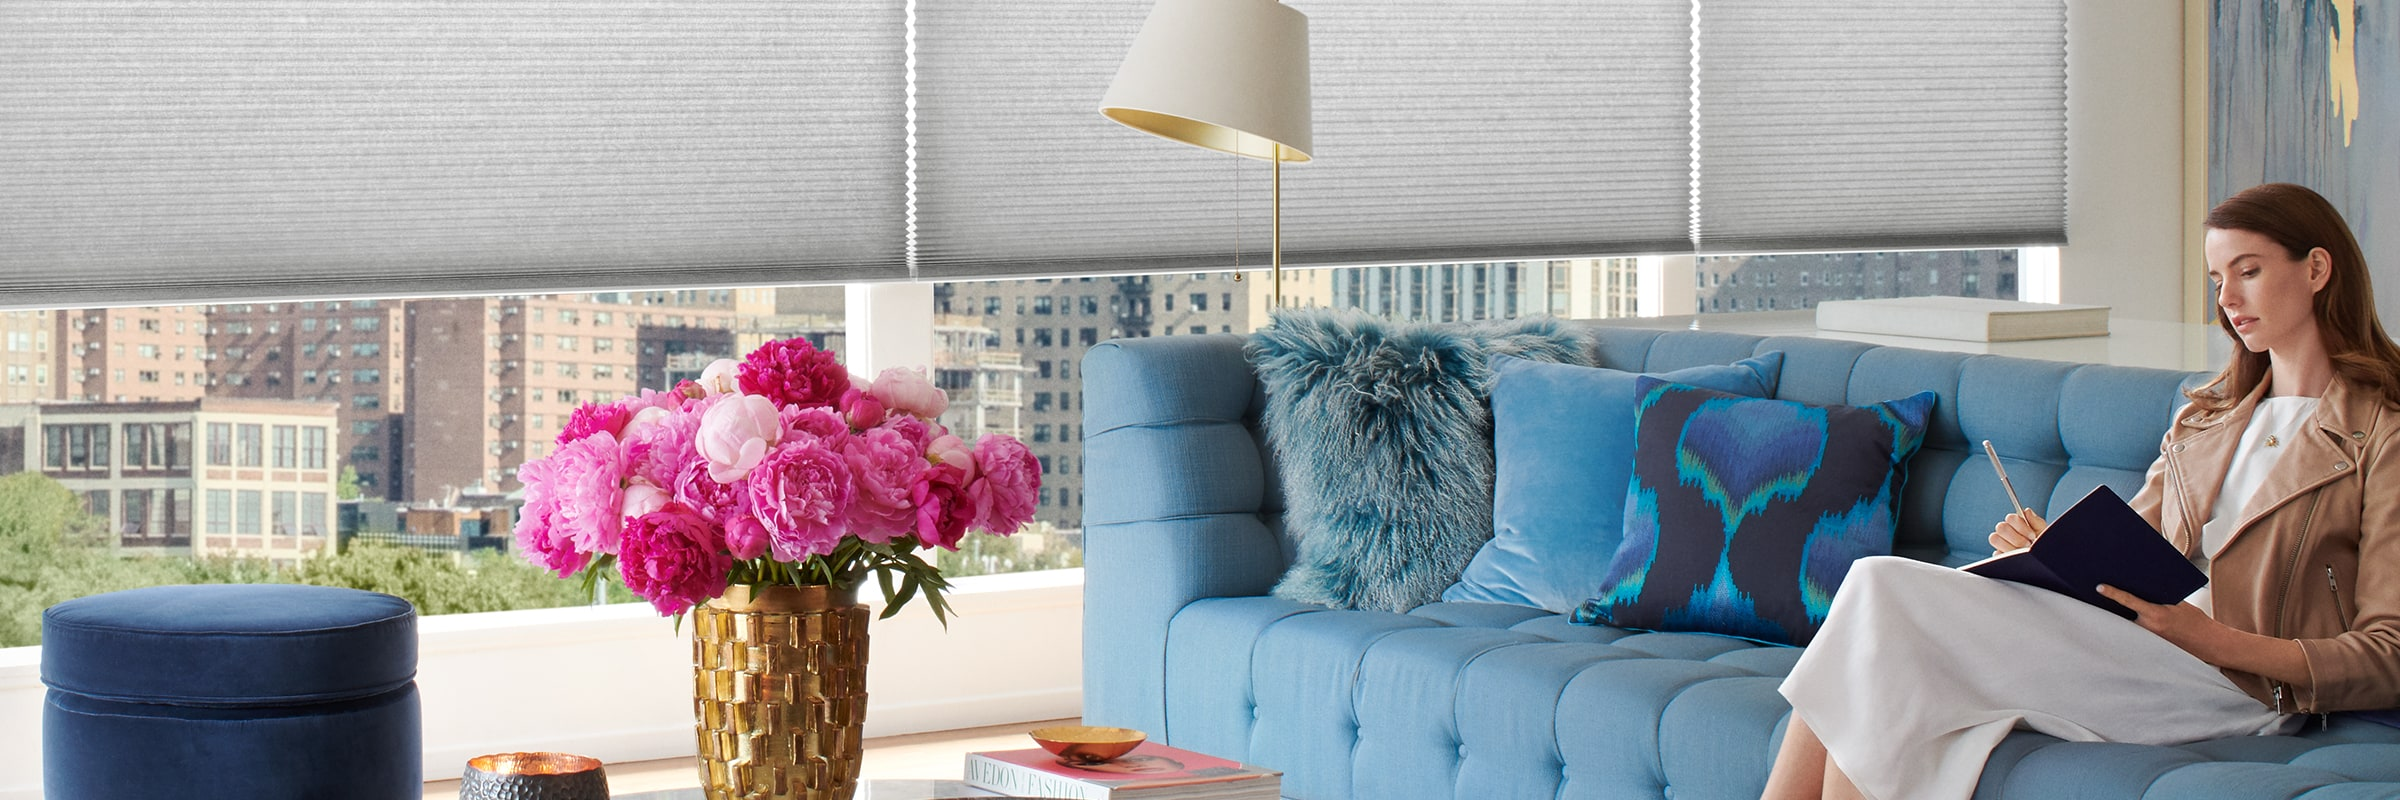 Duette Cellular shades in Architella Calypso Swell